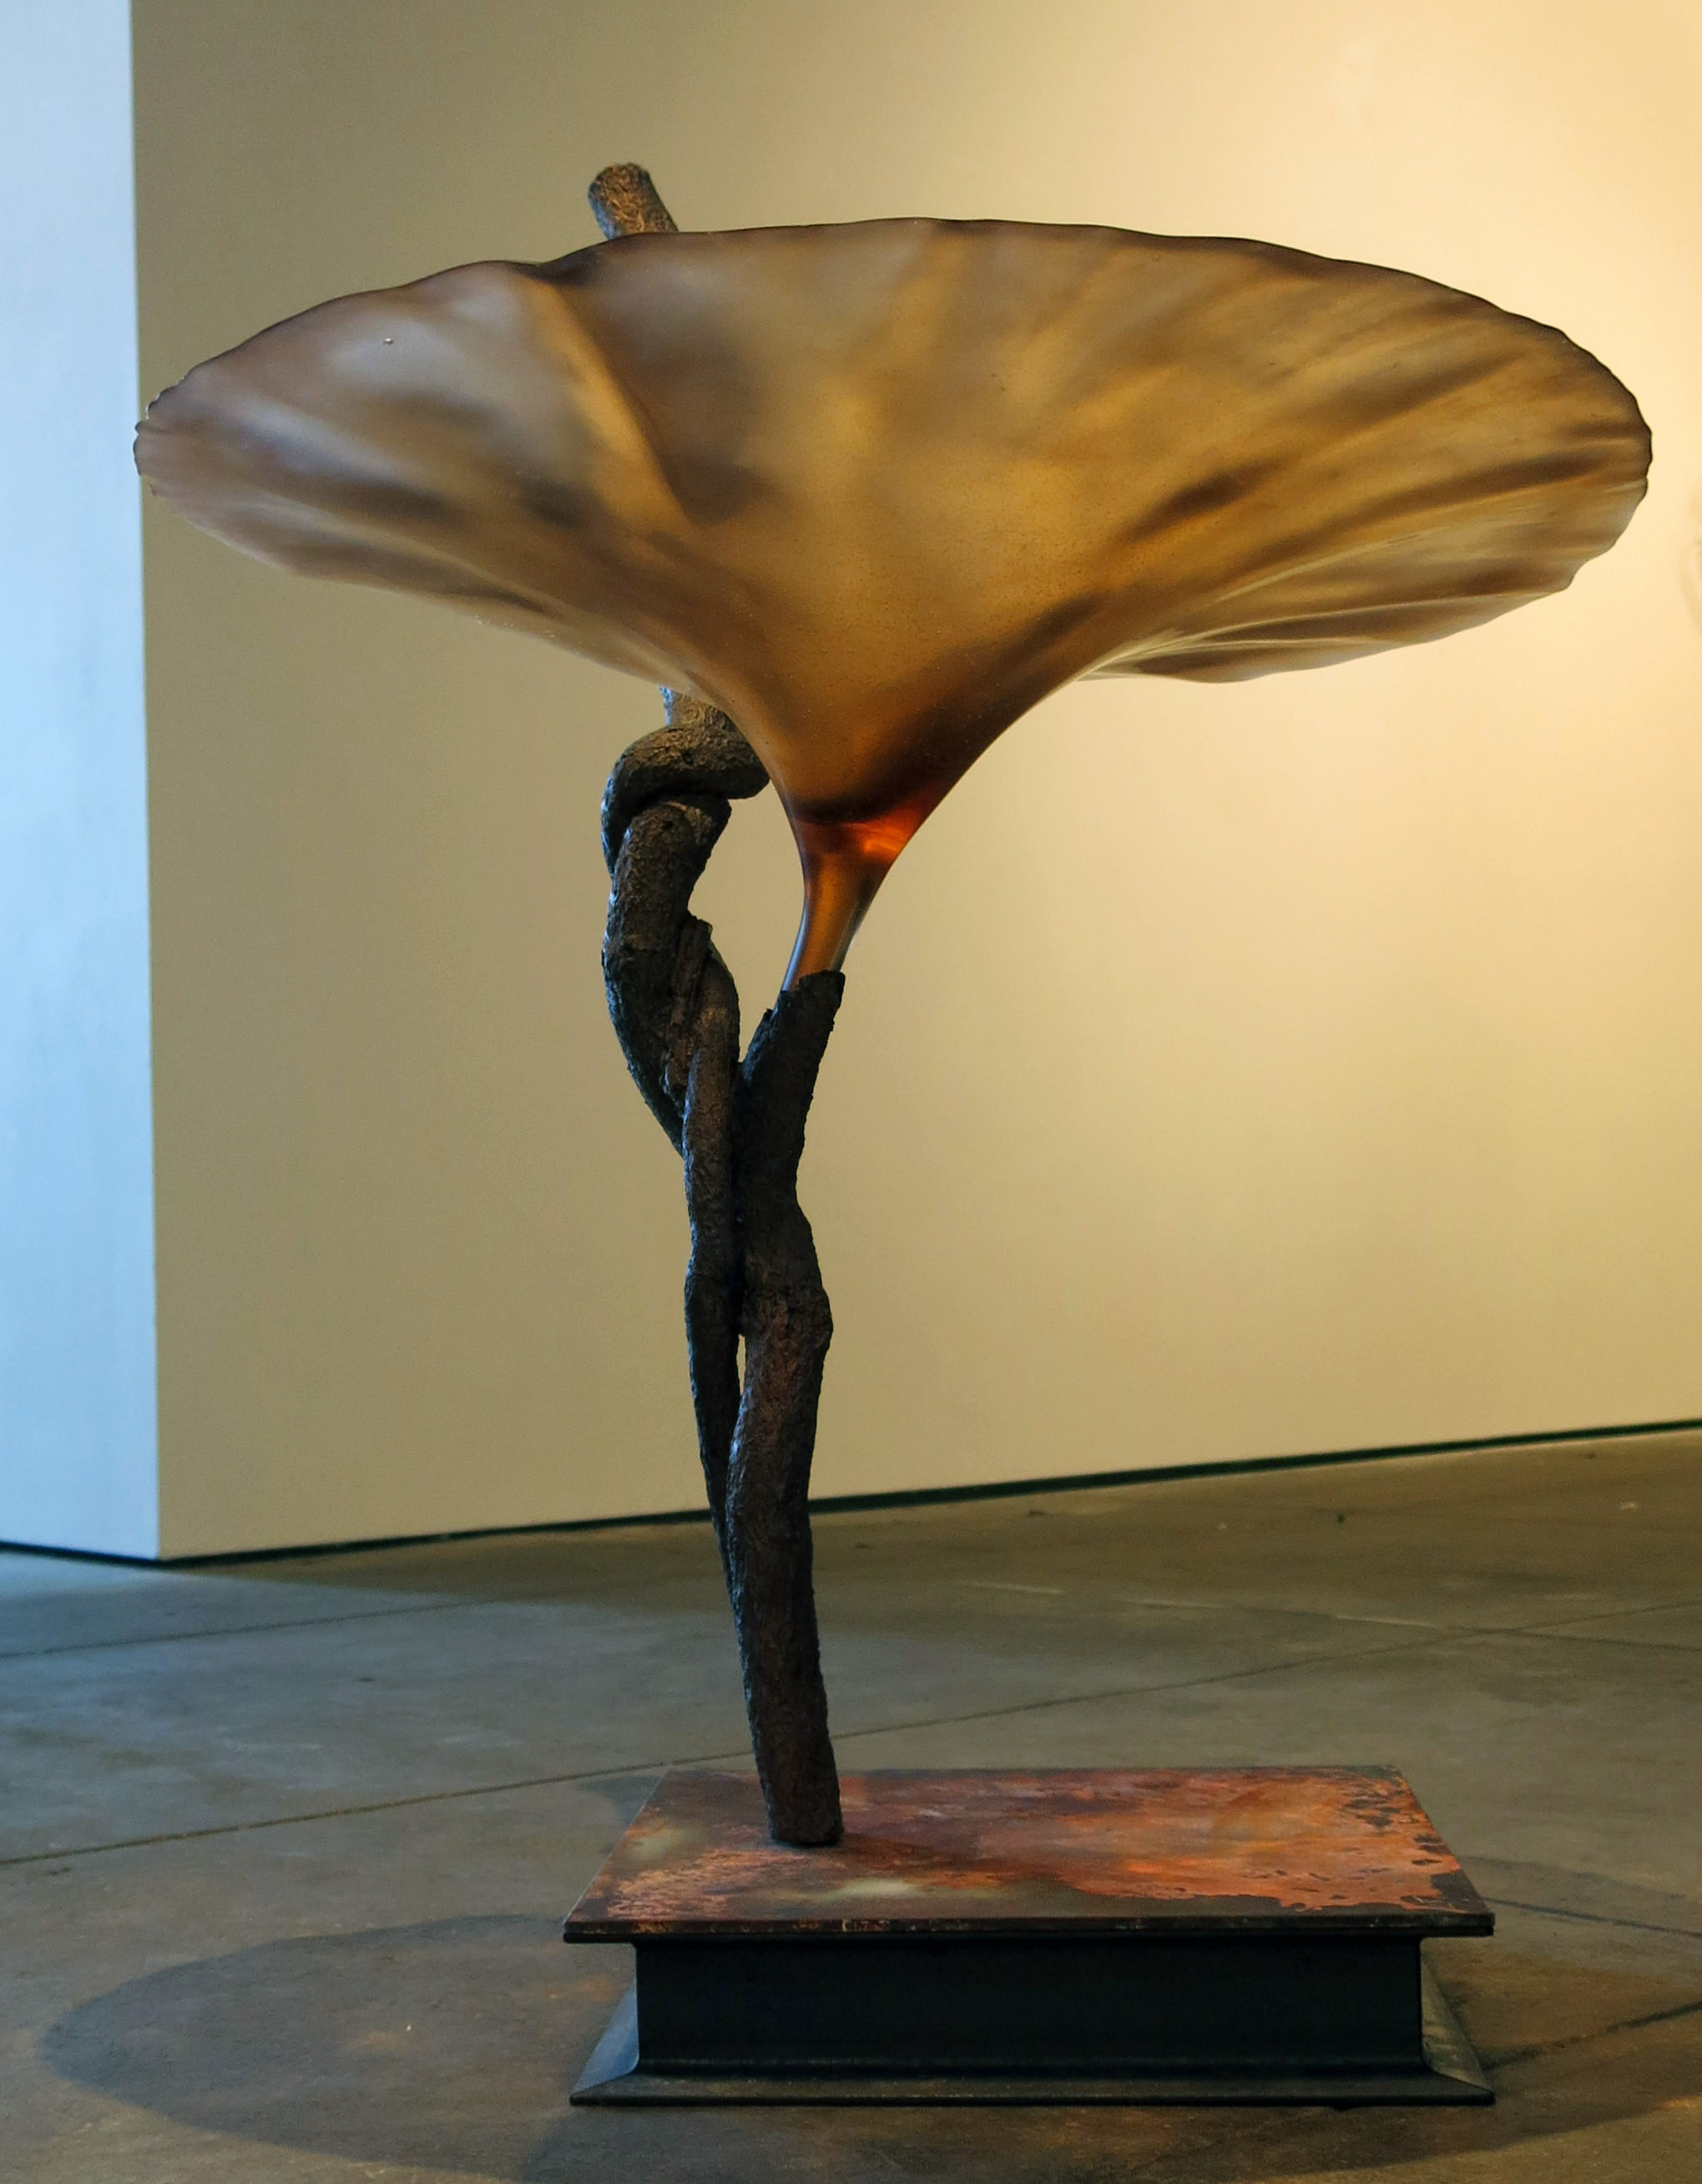 Markus Baenziger,  Uncommon Ground , 2014, bronze, metal, and synthetic resin, 39.5h x 27w x 27d in.